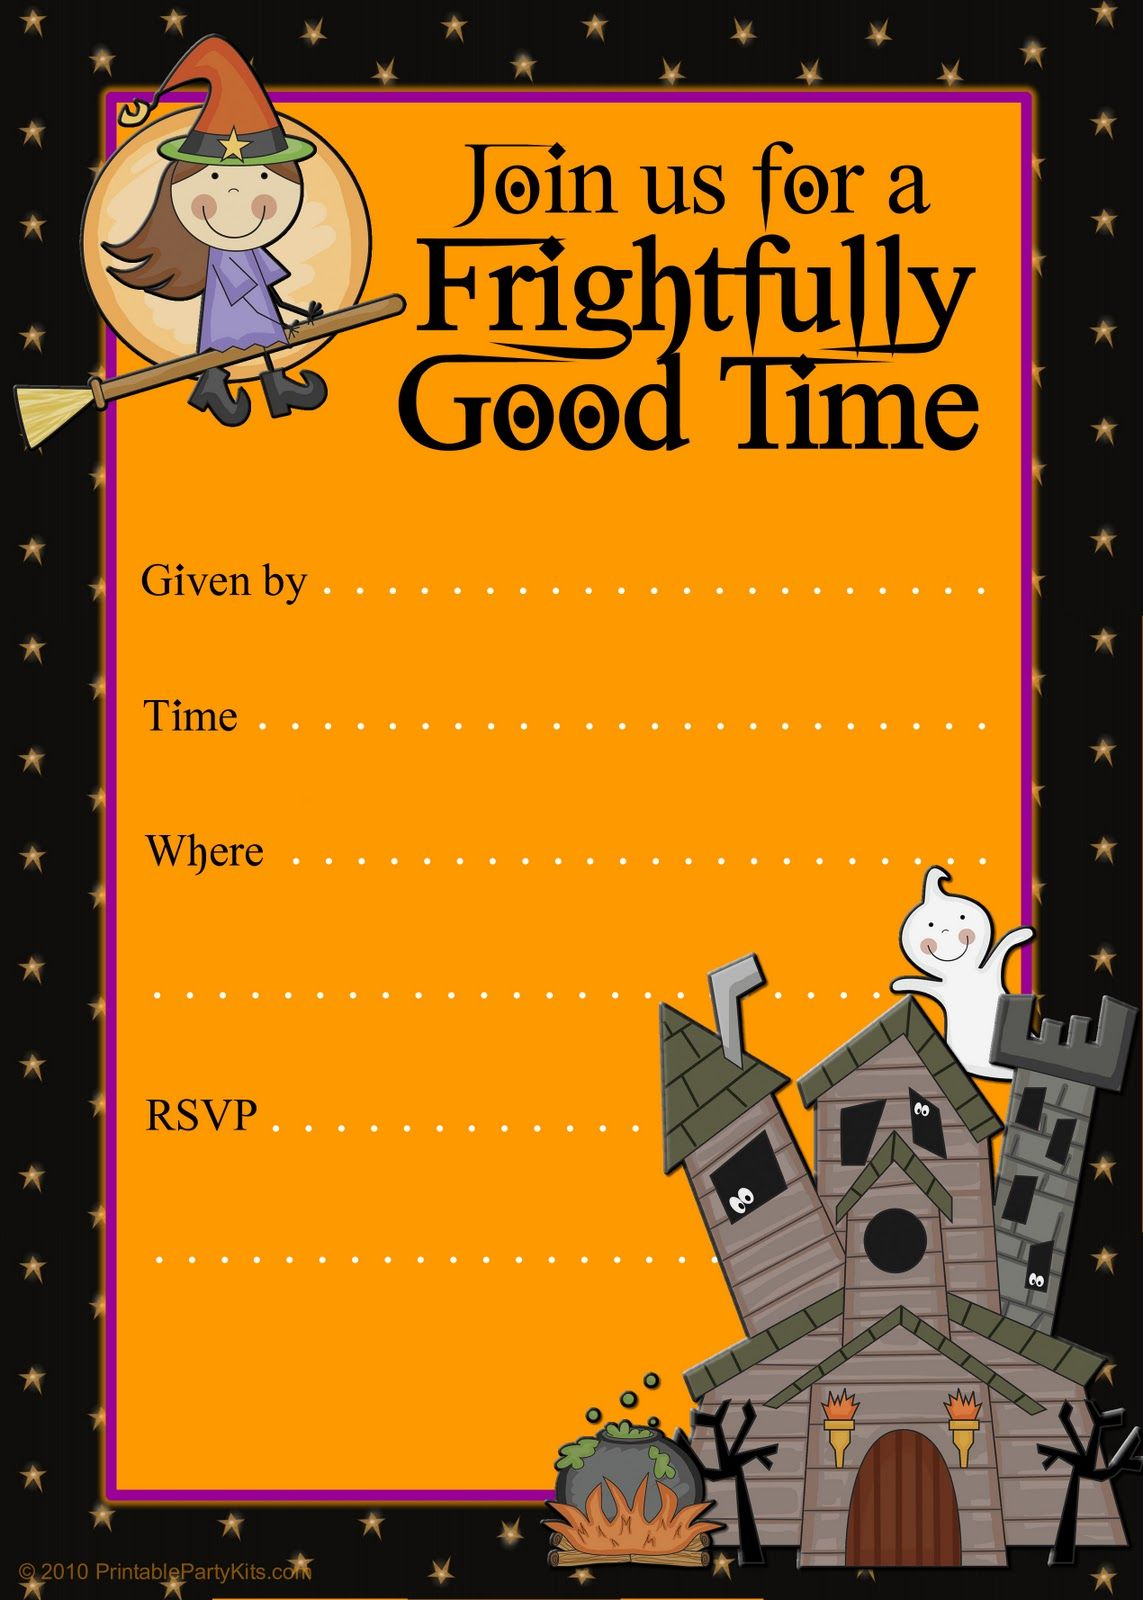 Free Halloween Flyer Invitations Printable | Food | Pinterest - Free Printable Birthday Party Flyers